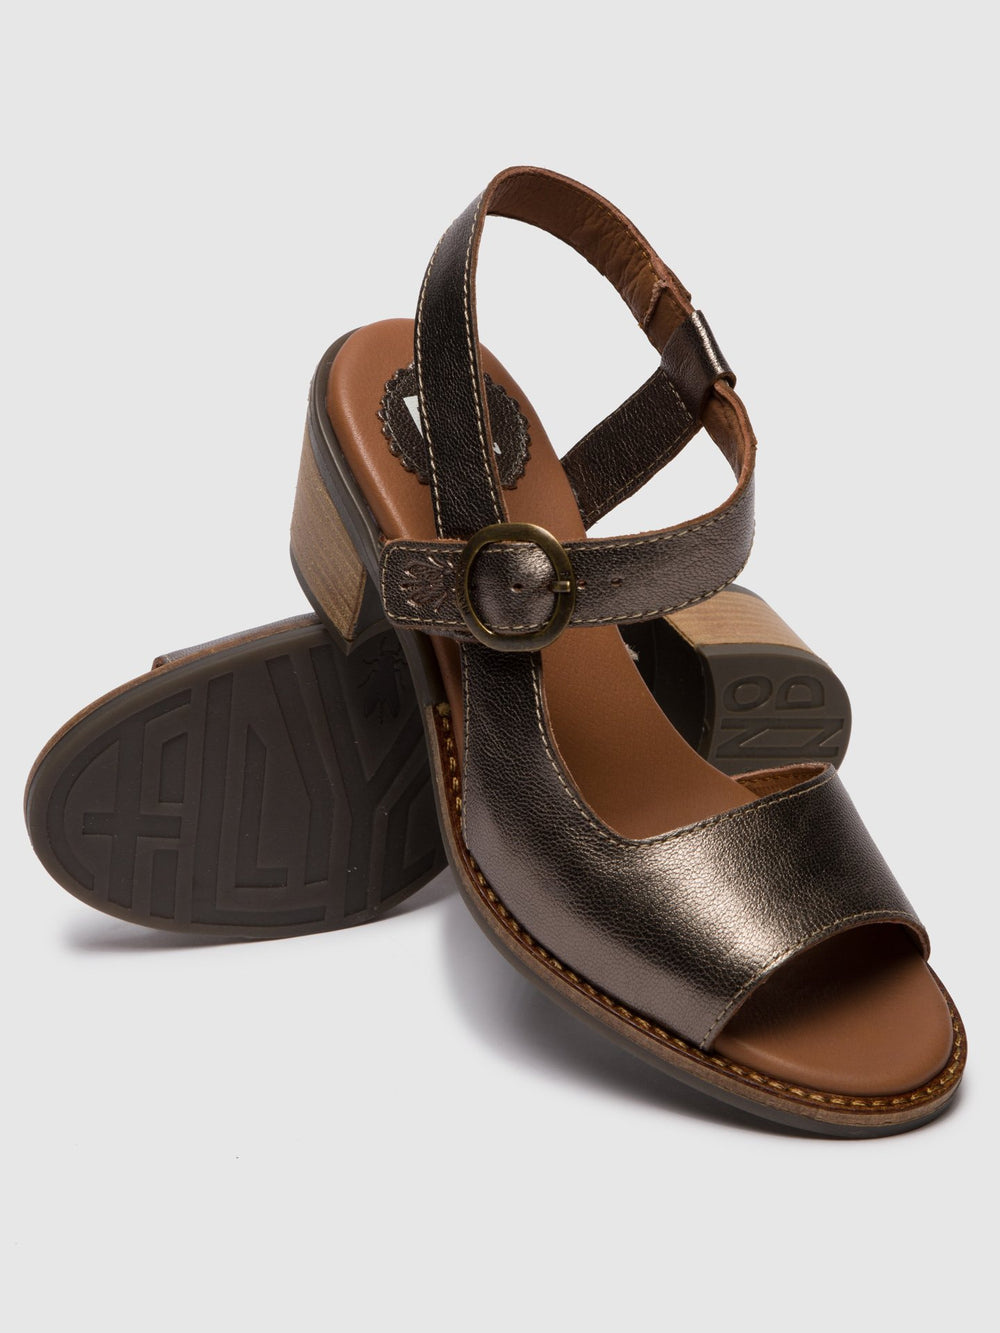 Buckle Sandals ZORA583FLY BRONZE